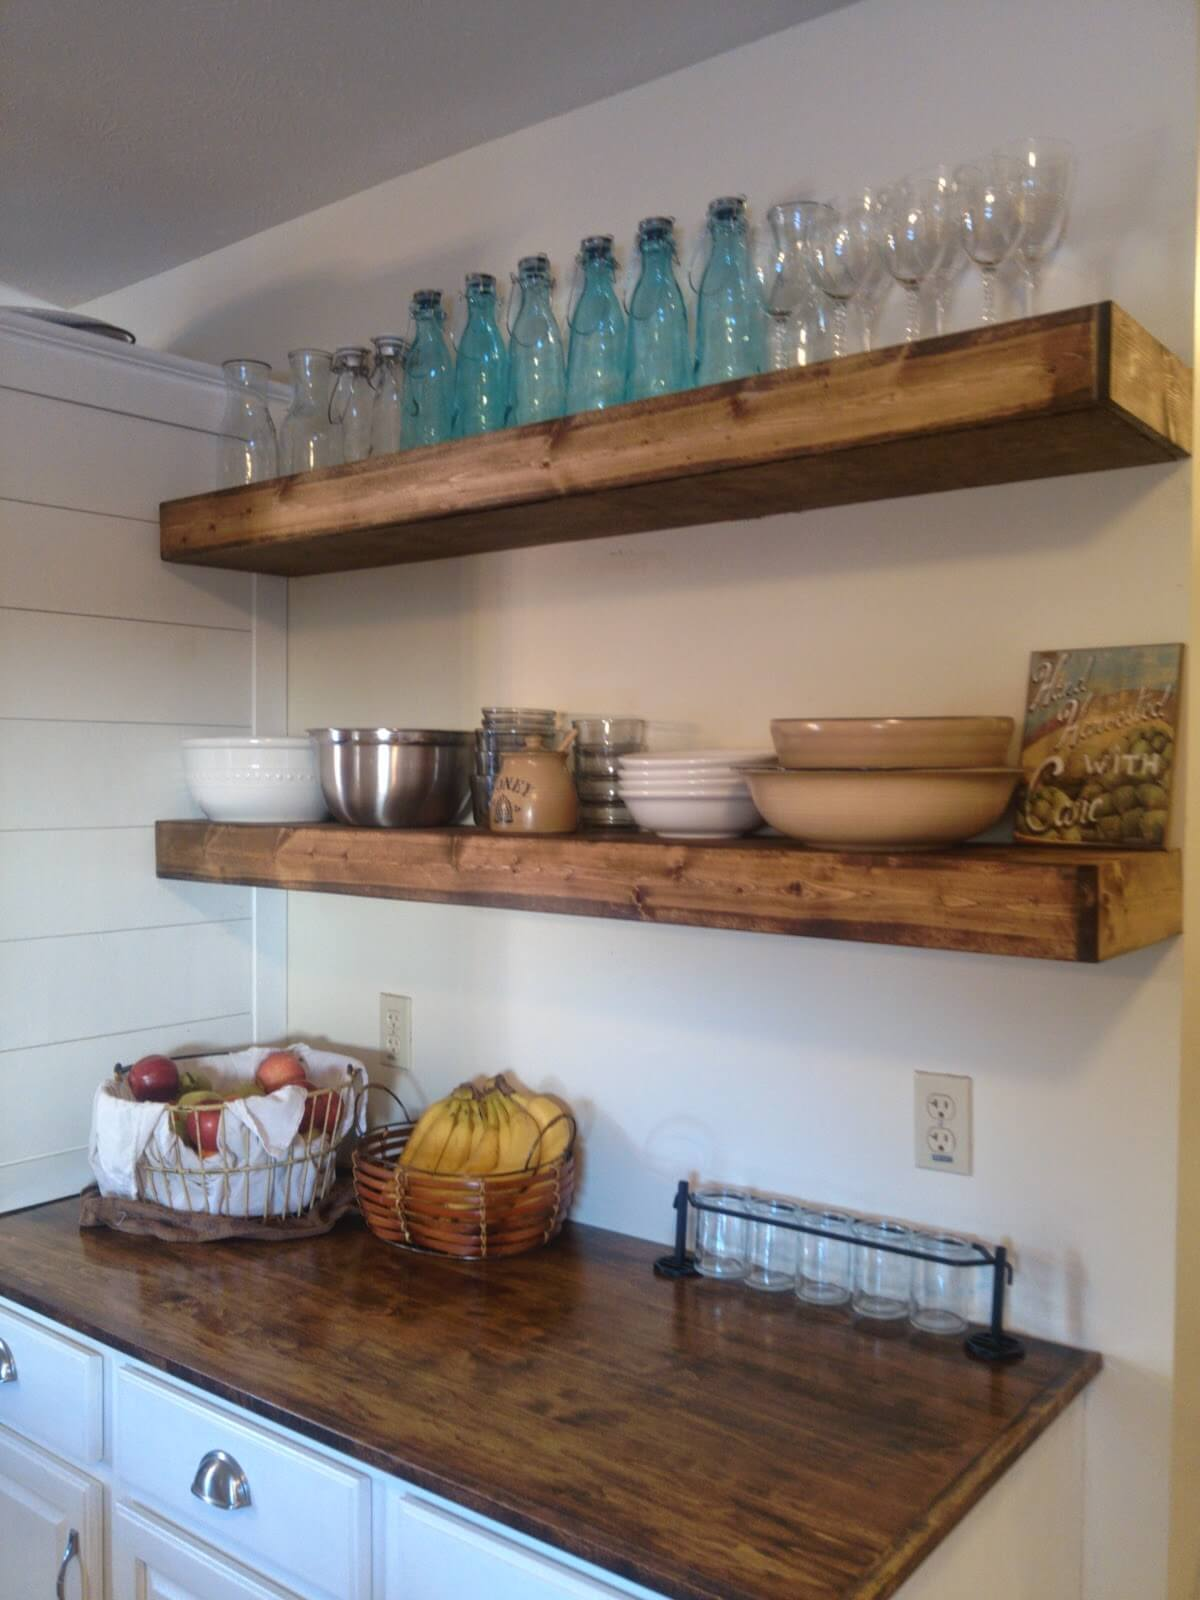 best diy floating shelf ideas and designs for homebnc kitchen shelves elegant farm style heavy duty radiator shelving making garage wall with back hanging glass self adhesive